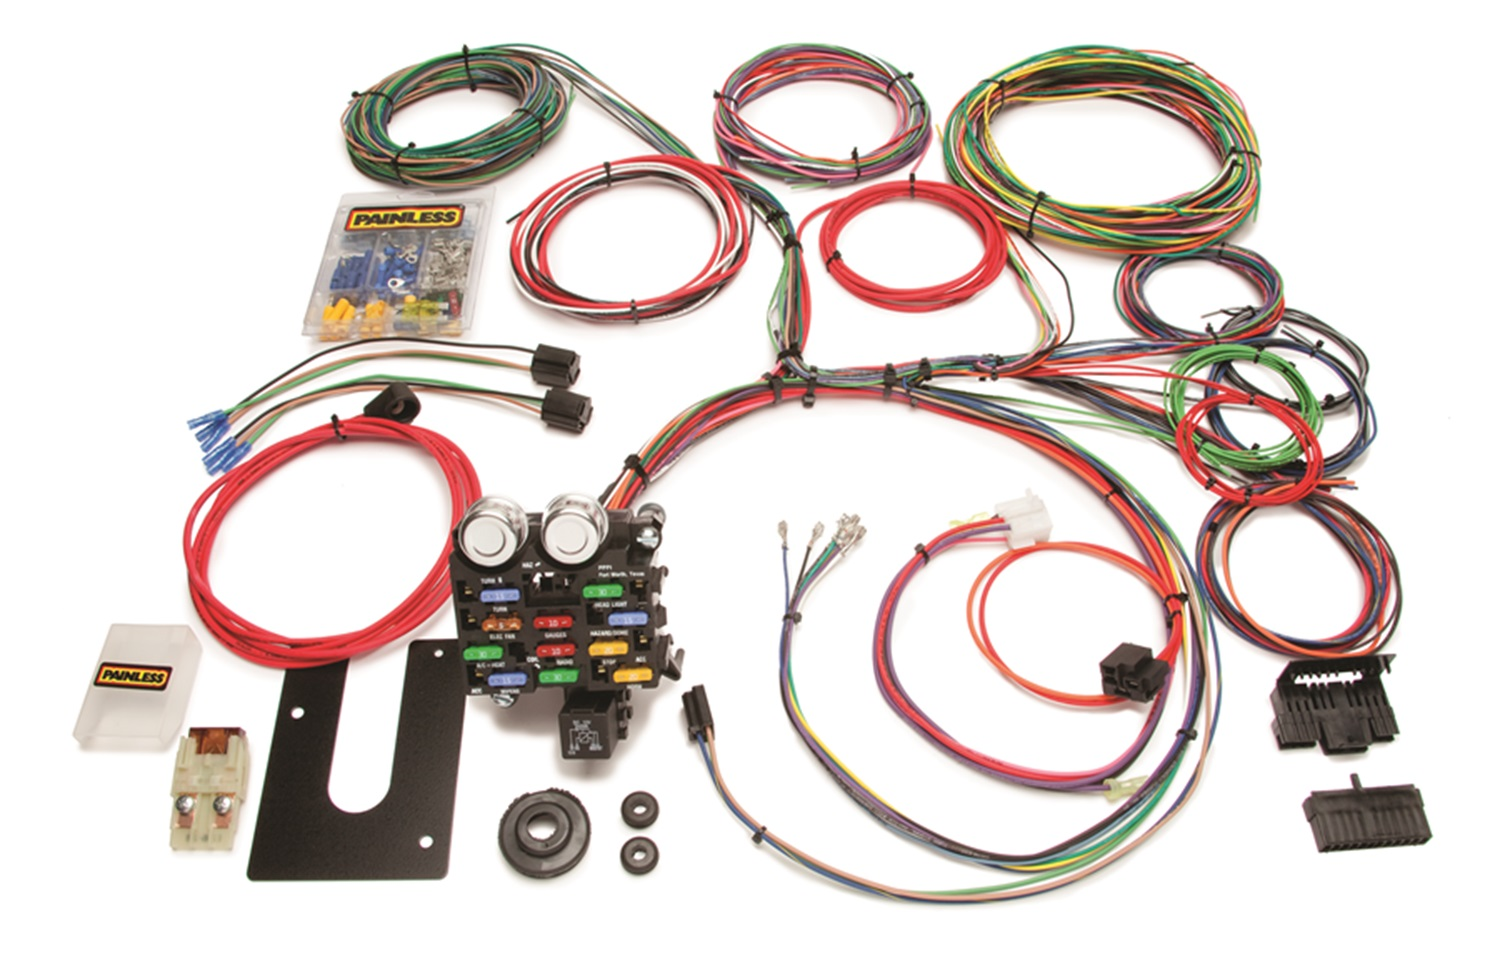 10206 Painless Wiring Fuse Block Electrical Diagrams 20101 Box Wrg Chassis Harness 44 18 Circuit Walmart Com Kits